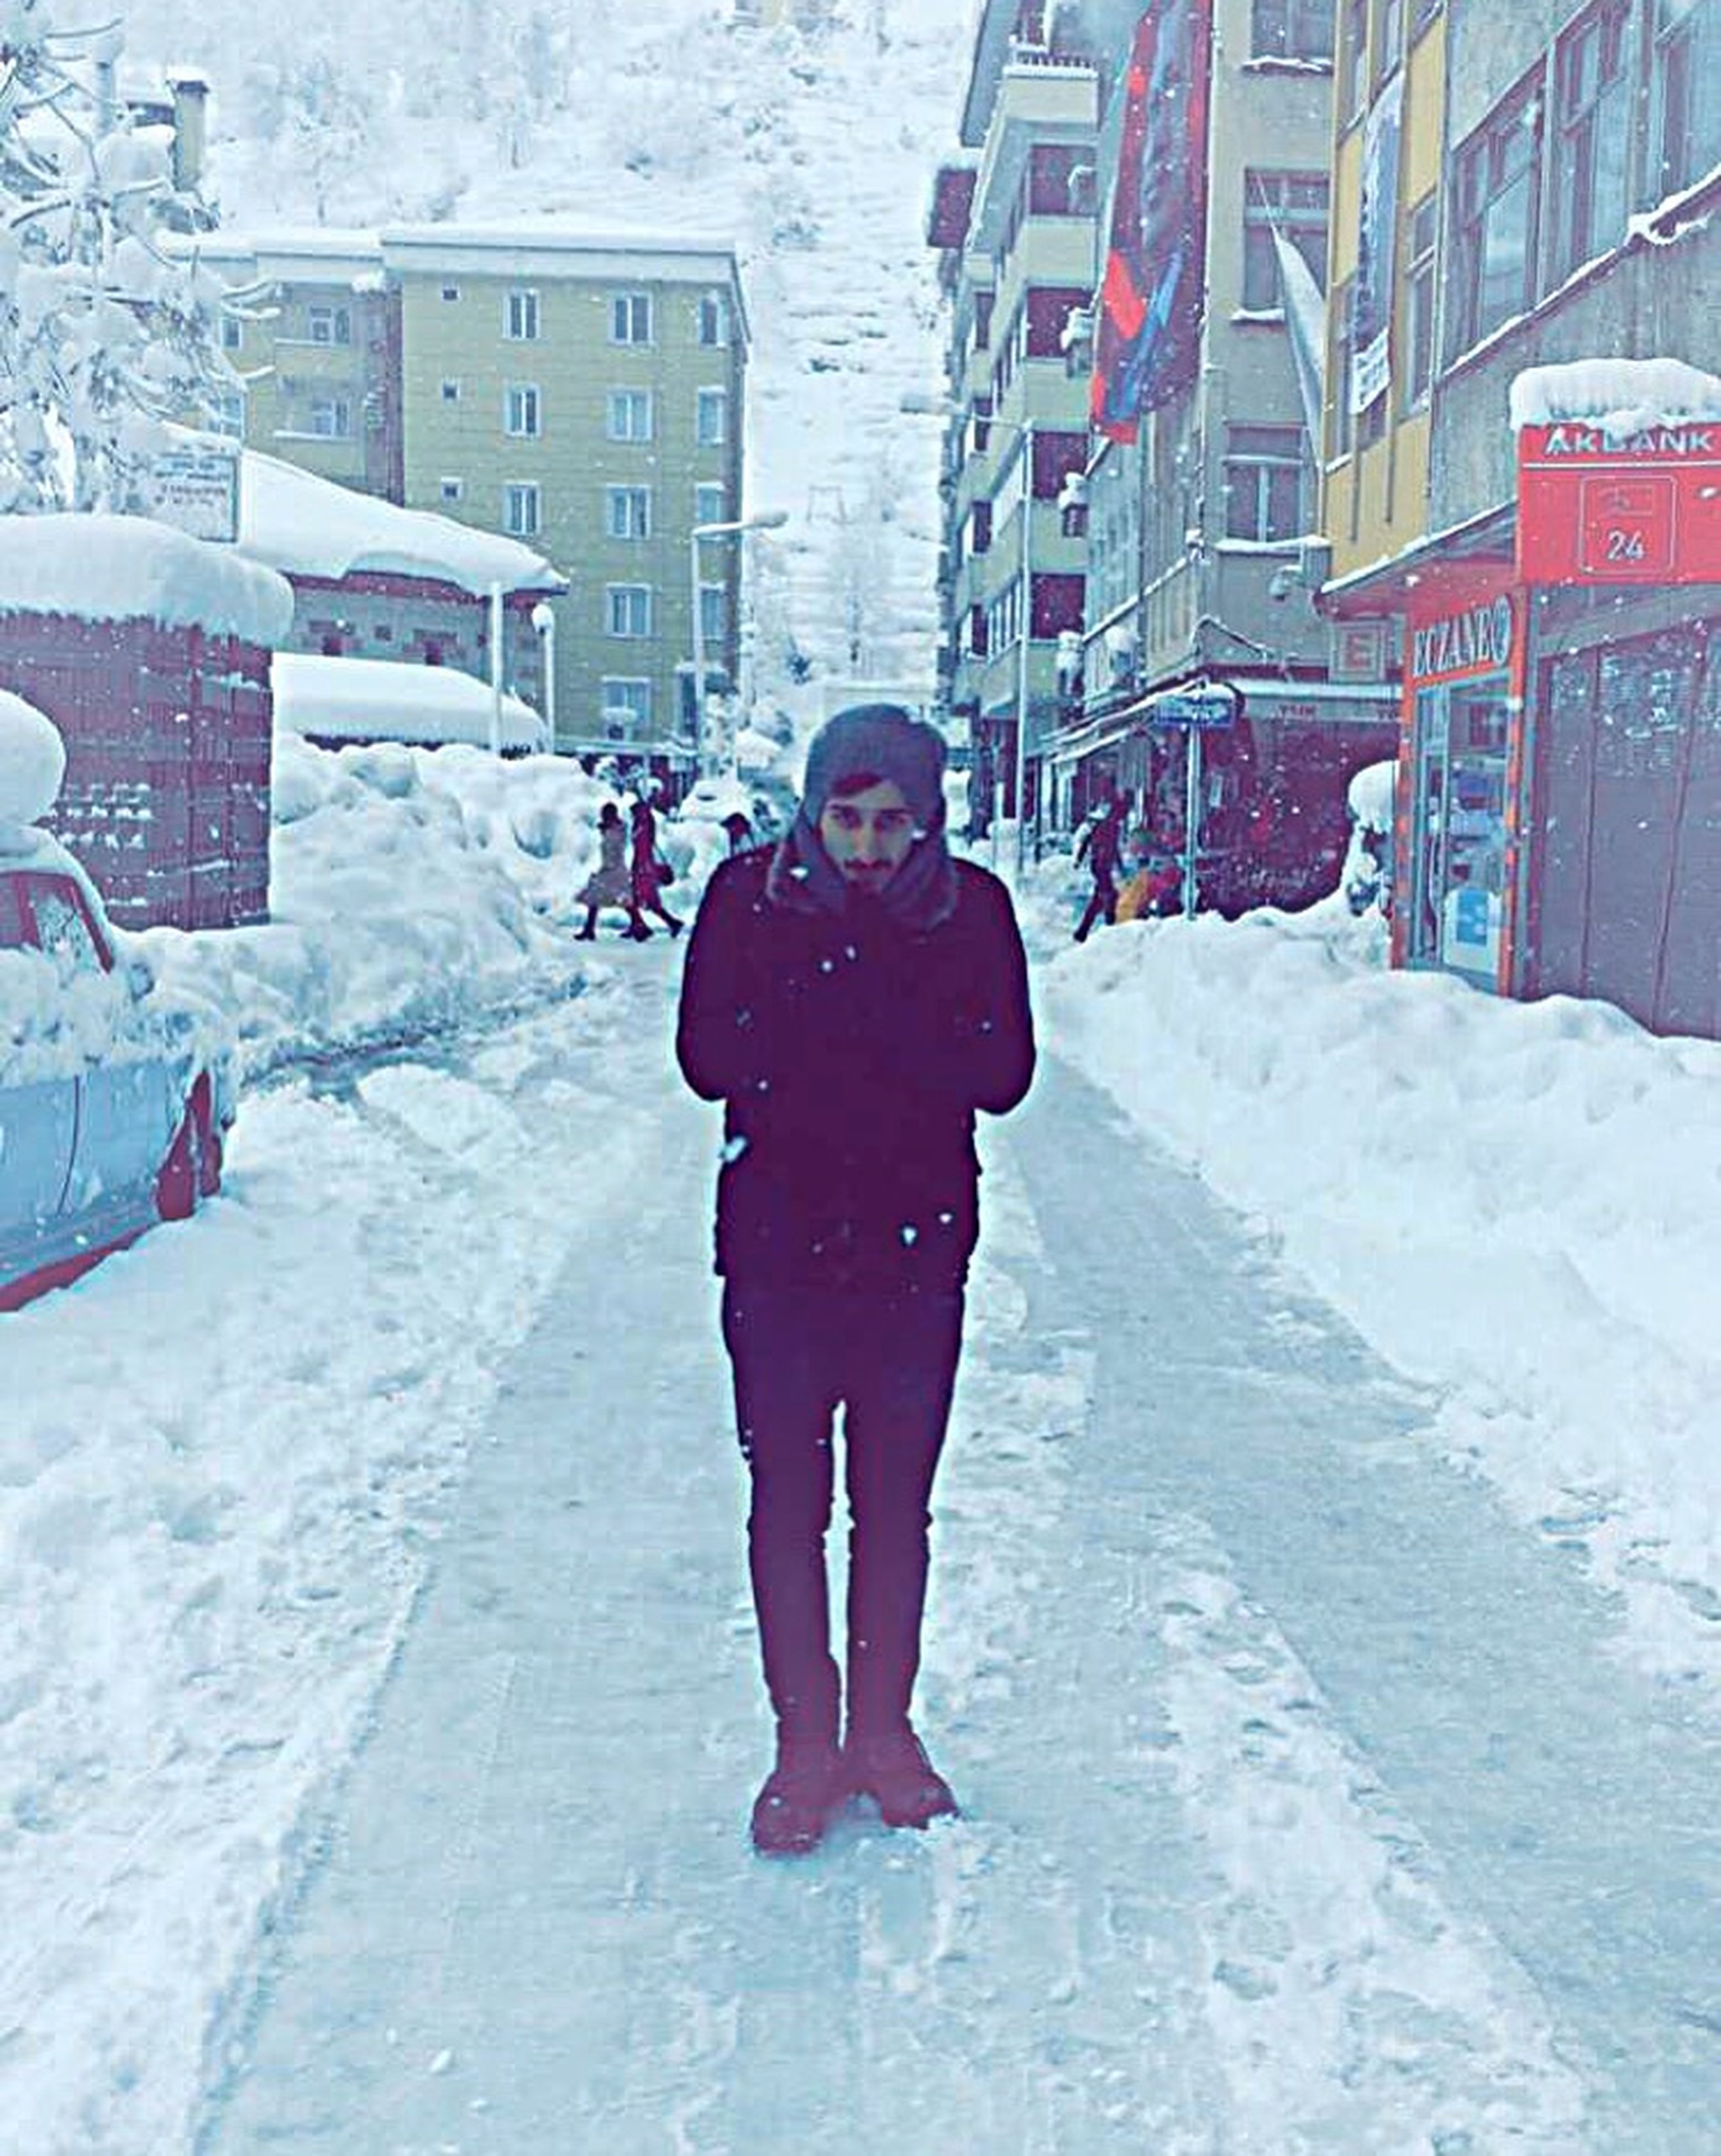 winter, snow, cold temperature, season, weather, full length, warm clothing, building exterior, lifestyles, architecture, walking, built structure, street, covering, rear view, umbrella, leisure activity, snowing